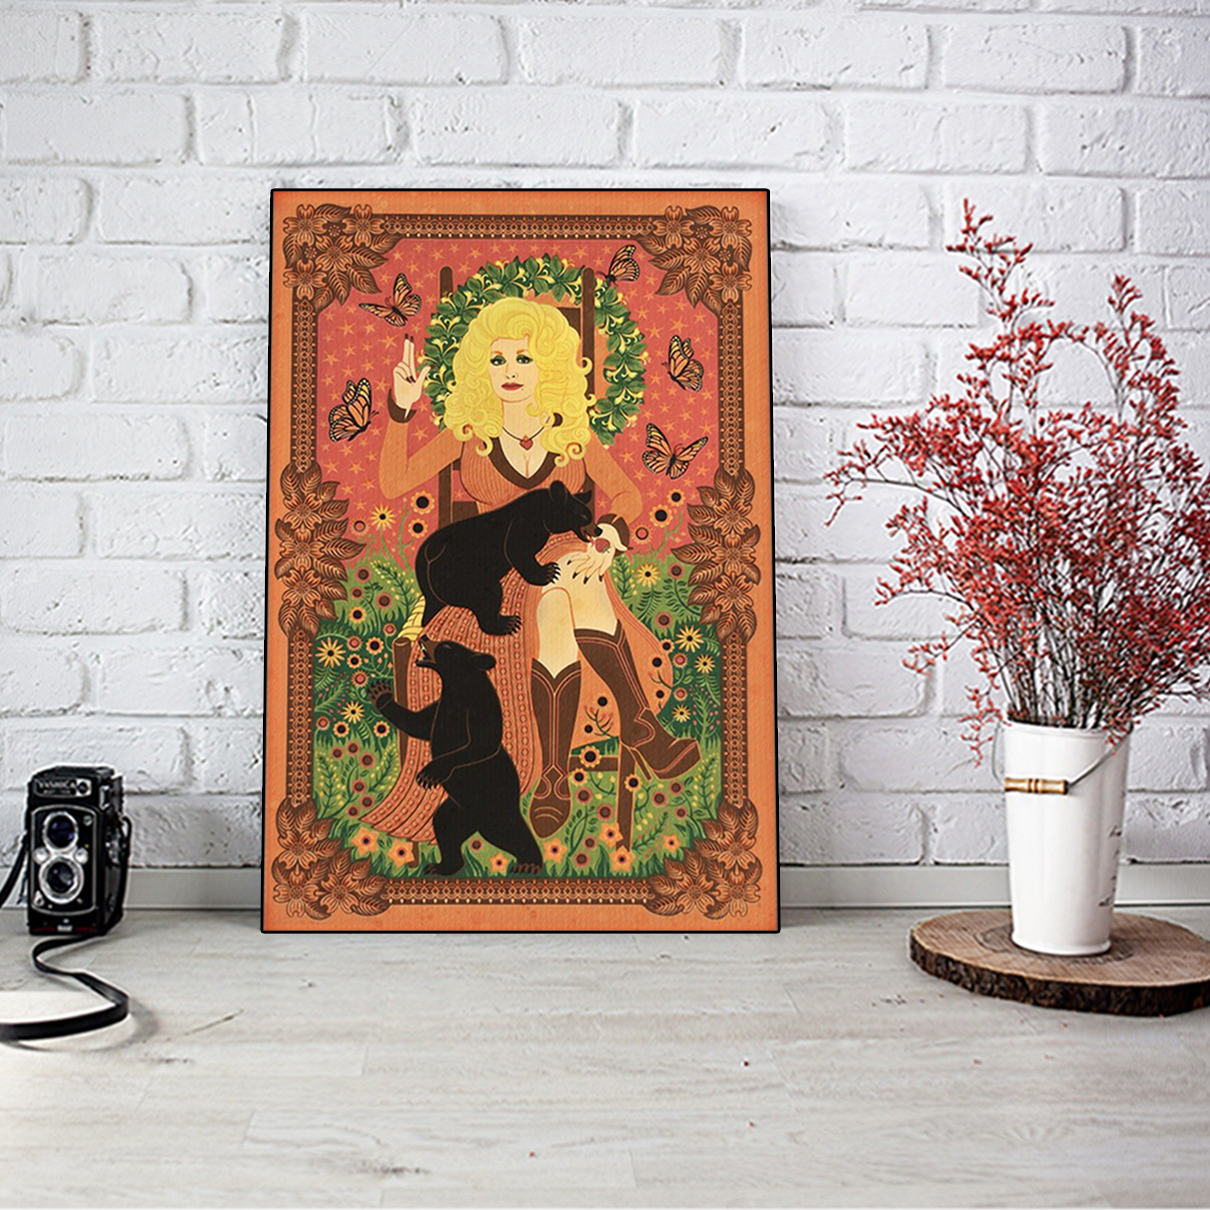 Dolly parton with bears and butterflies poster A3